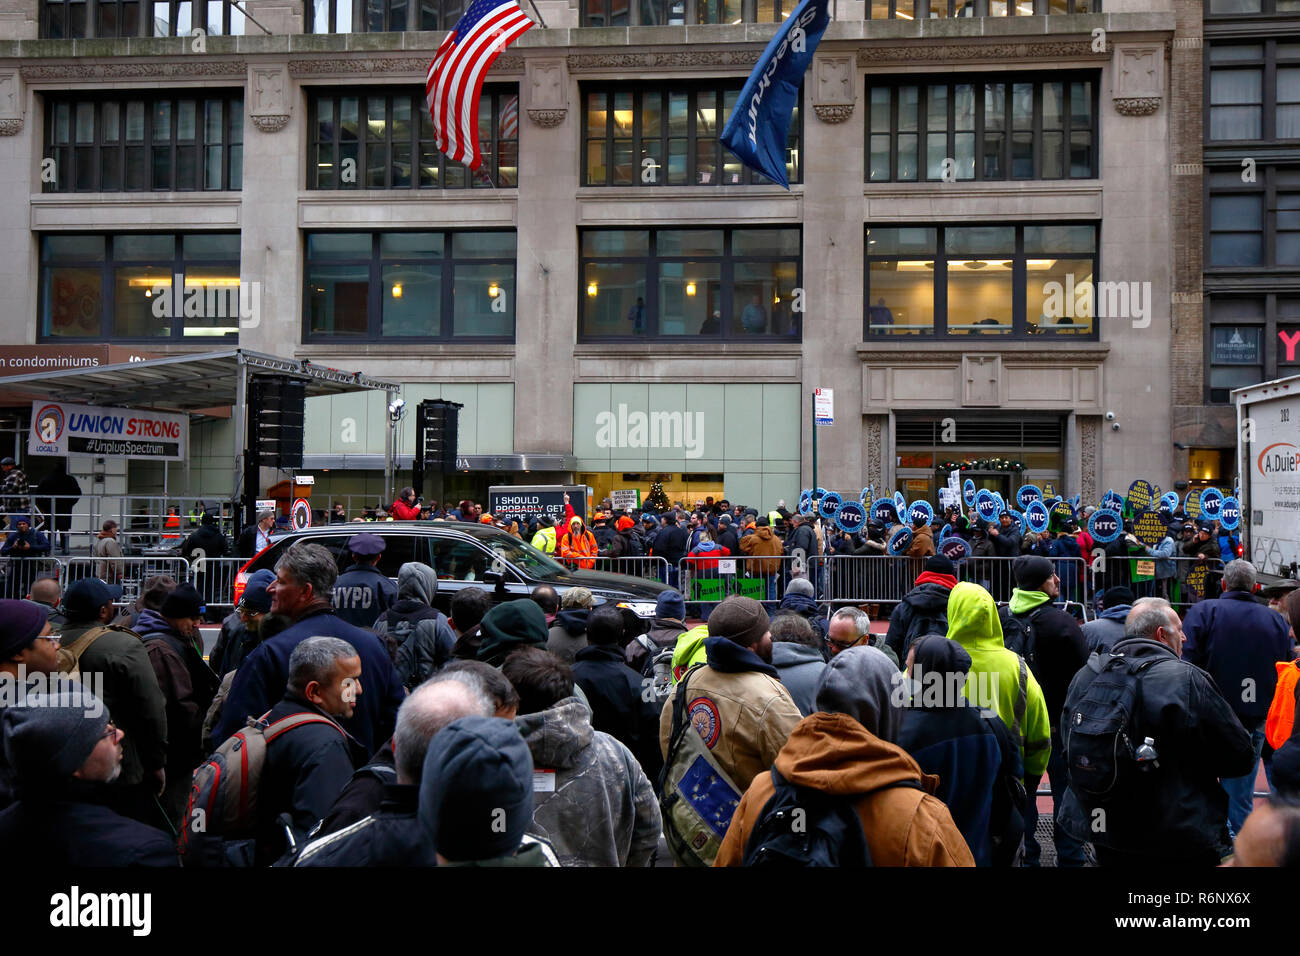 A large union labor rally held outside Charter Spectrum's offices denouncing their union busting, and deceptive business practices - Stock Image